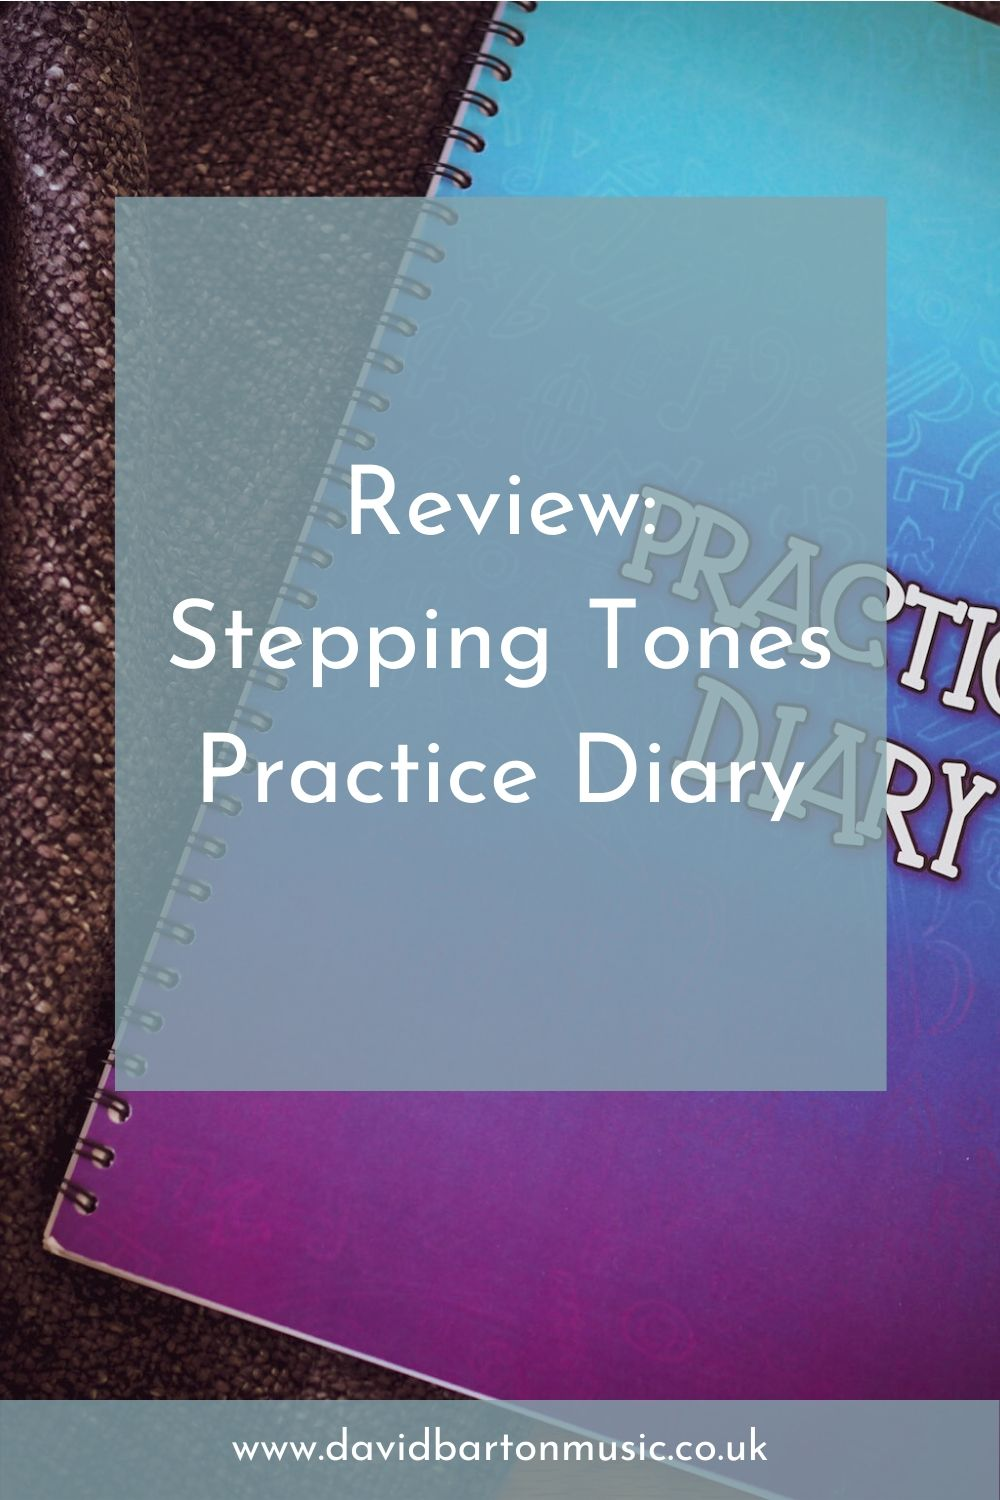 Review: Stepping Tones Practice Diary. Pinterest graphic.